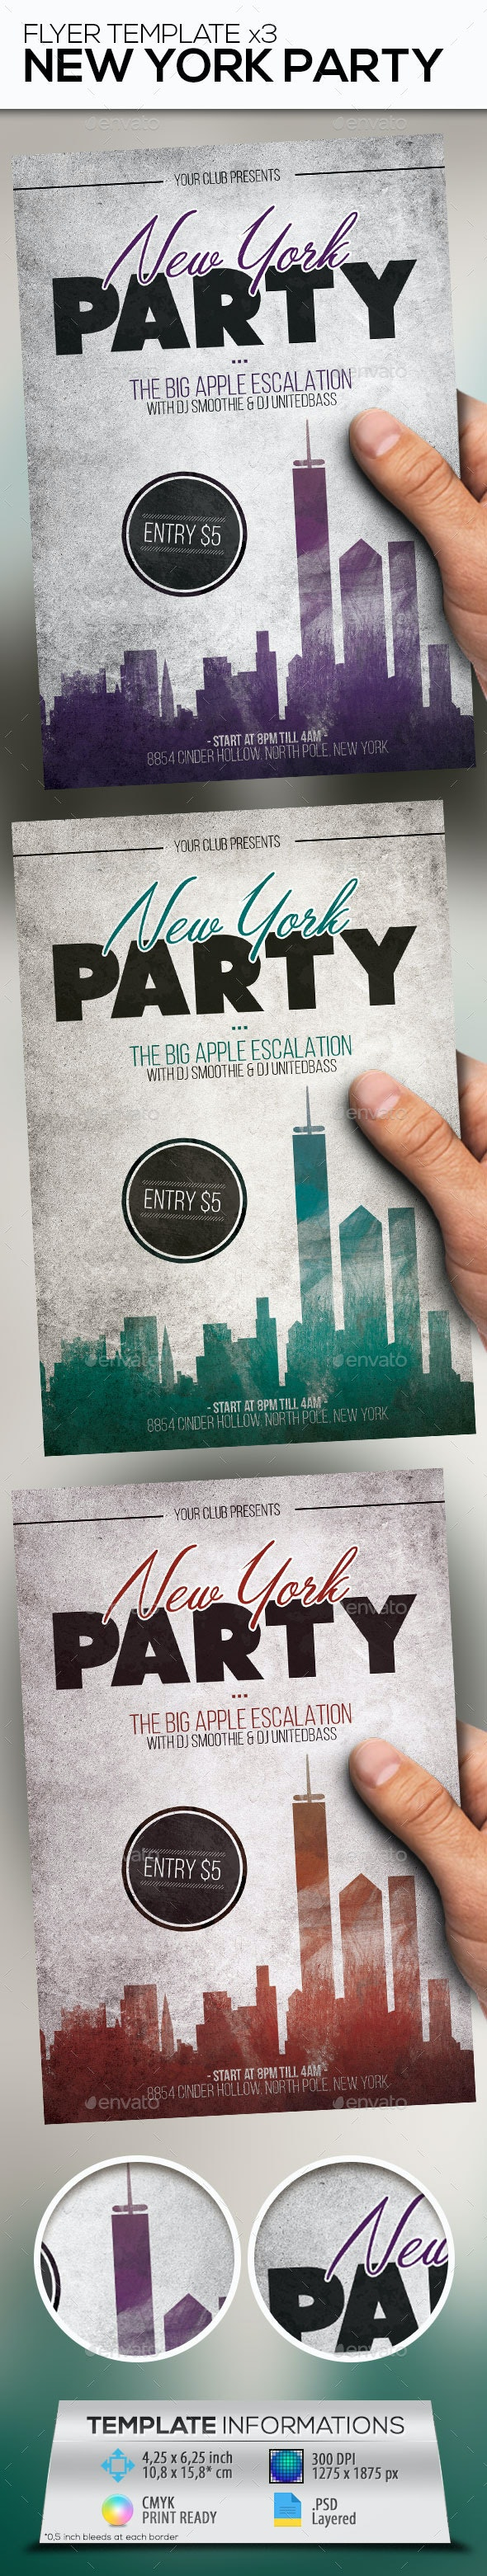 New York Party Flyer Template - Events Flyers